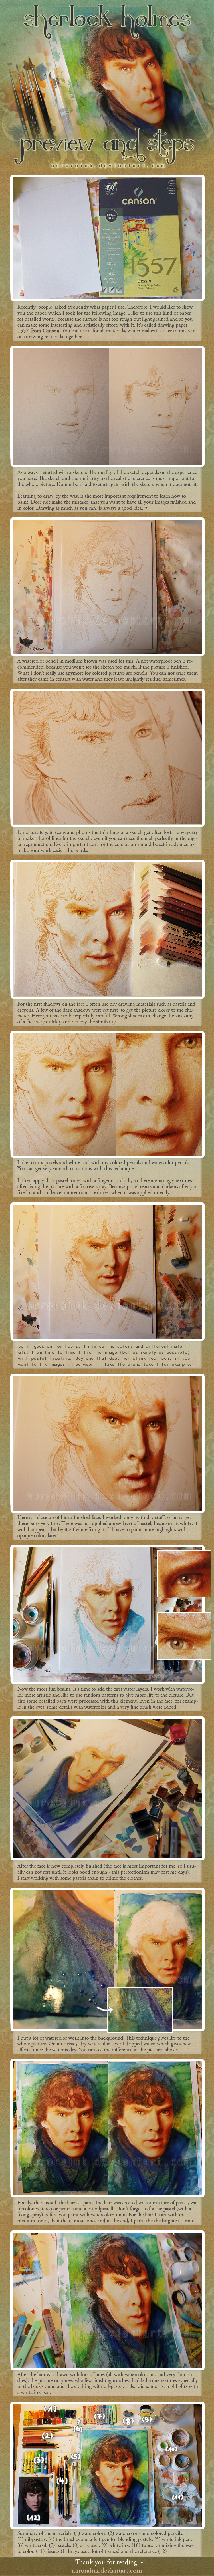 Sherlock Holmes Preview and Steps Tutorial by AuroraWienhold